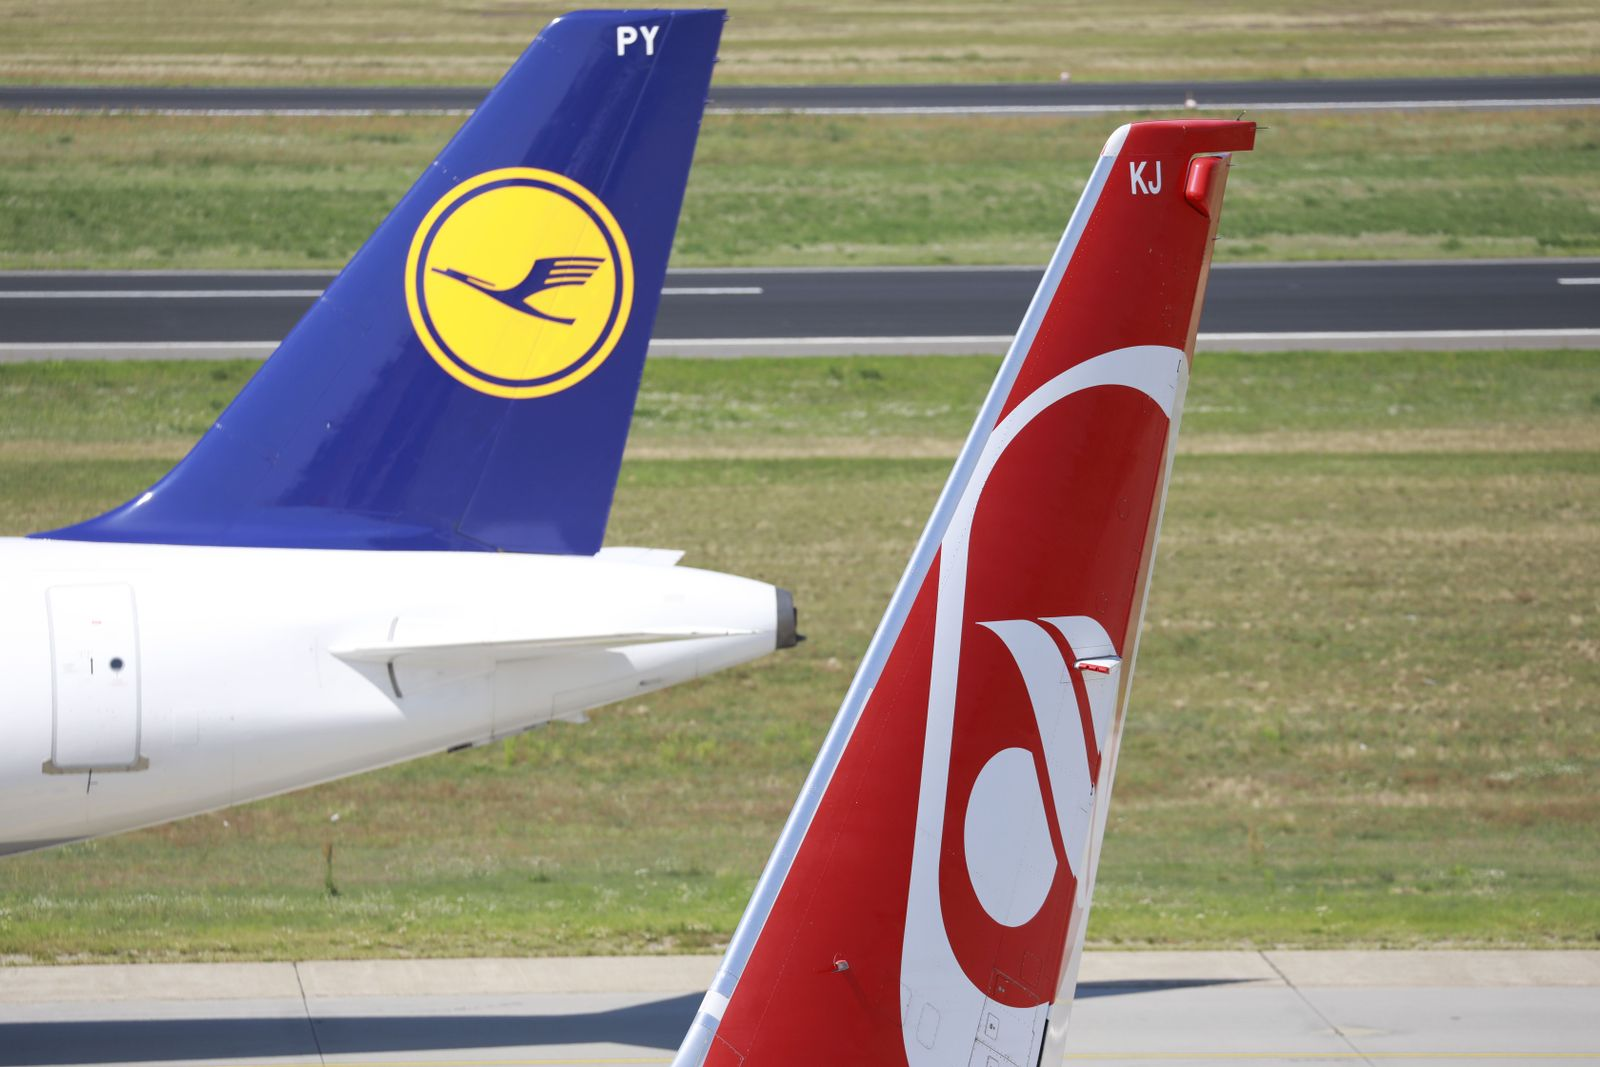 FILES-GERMANY-AVIATION-INSOLVENCY-TOURISM-AIRBERLIN-LUFTHANSA